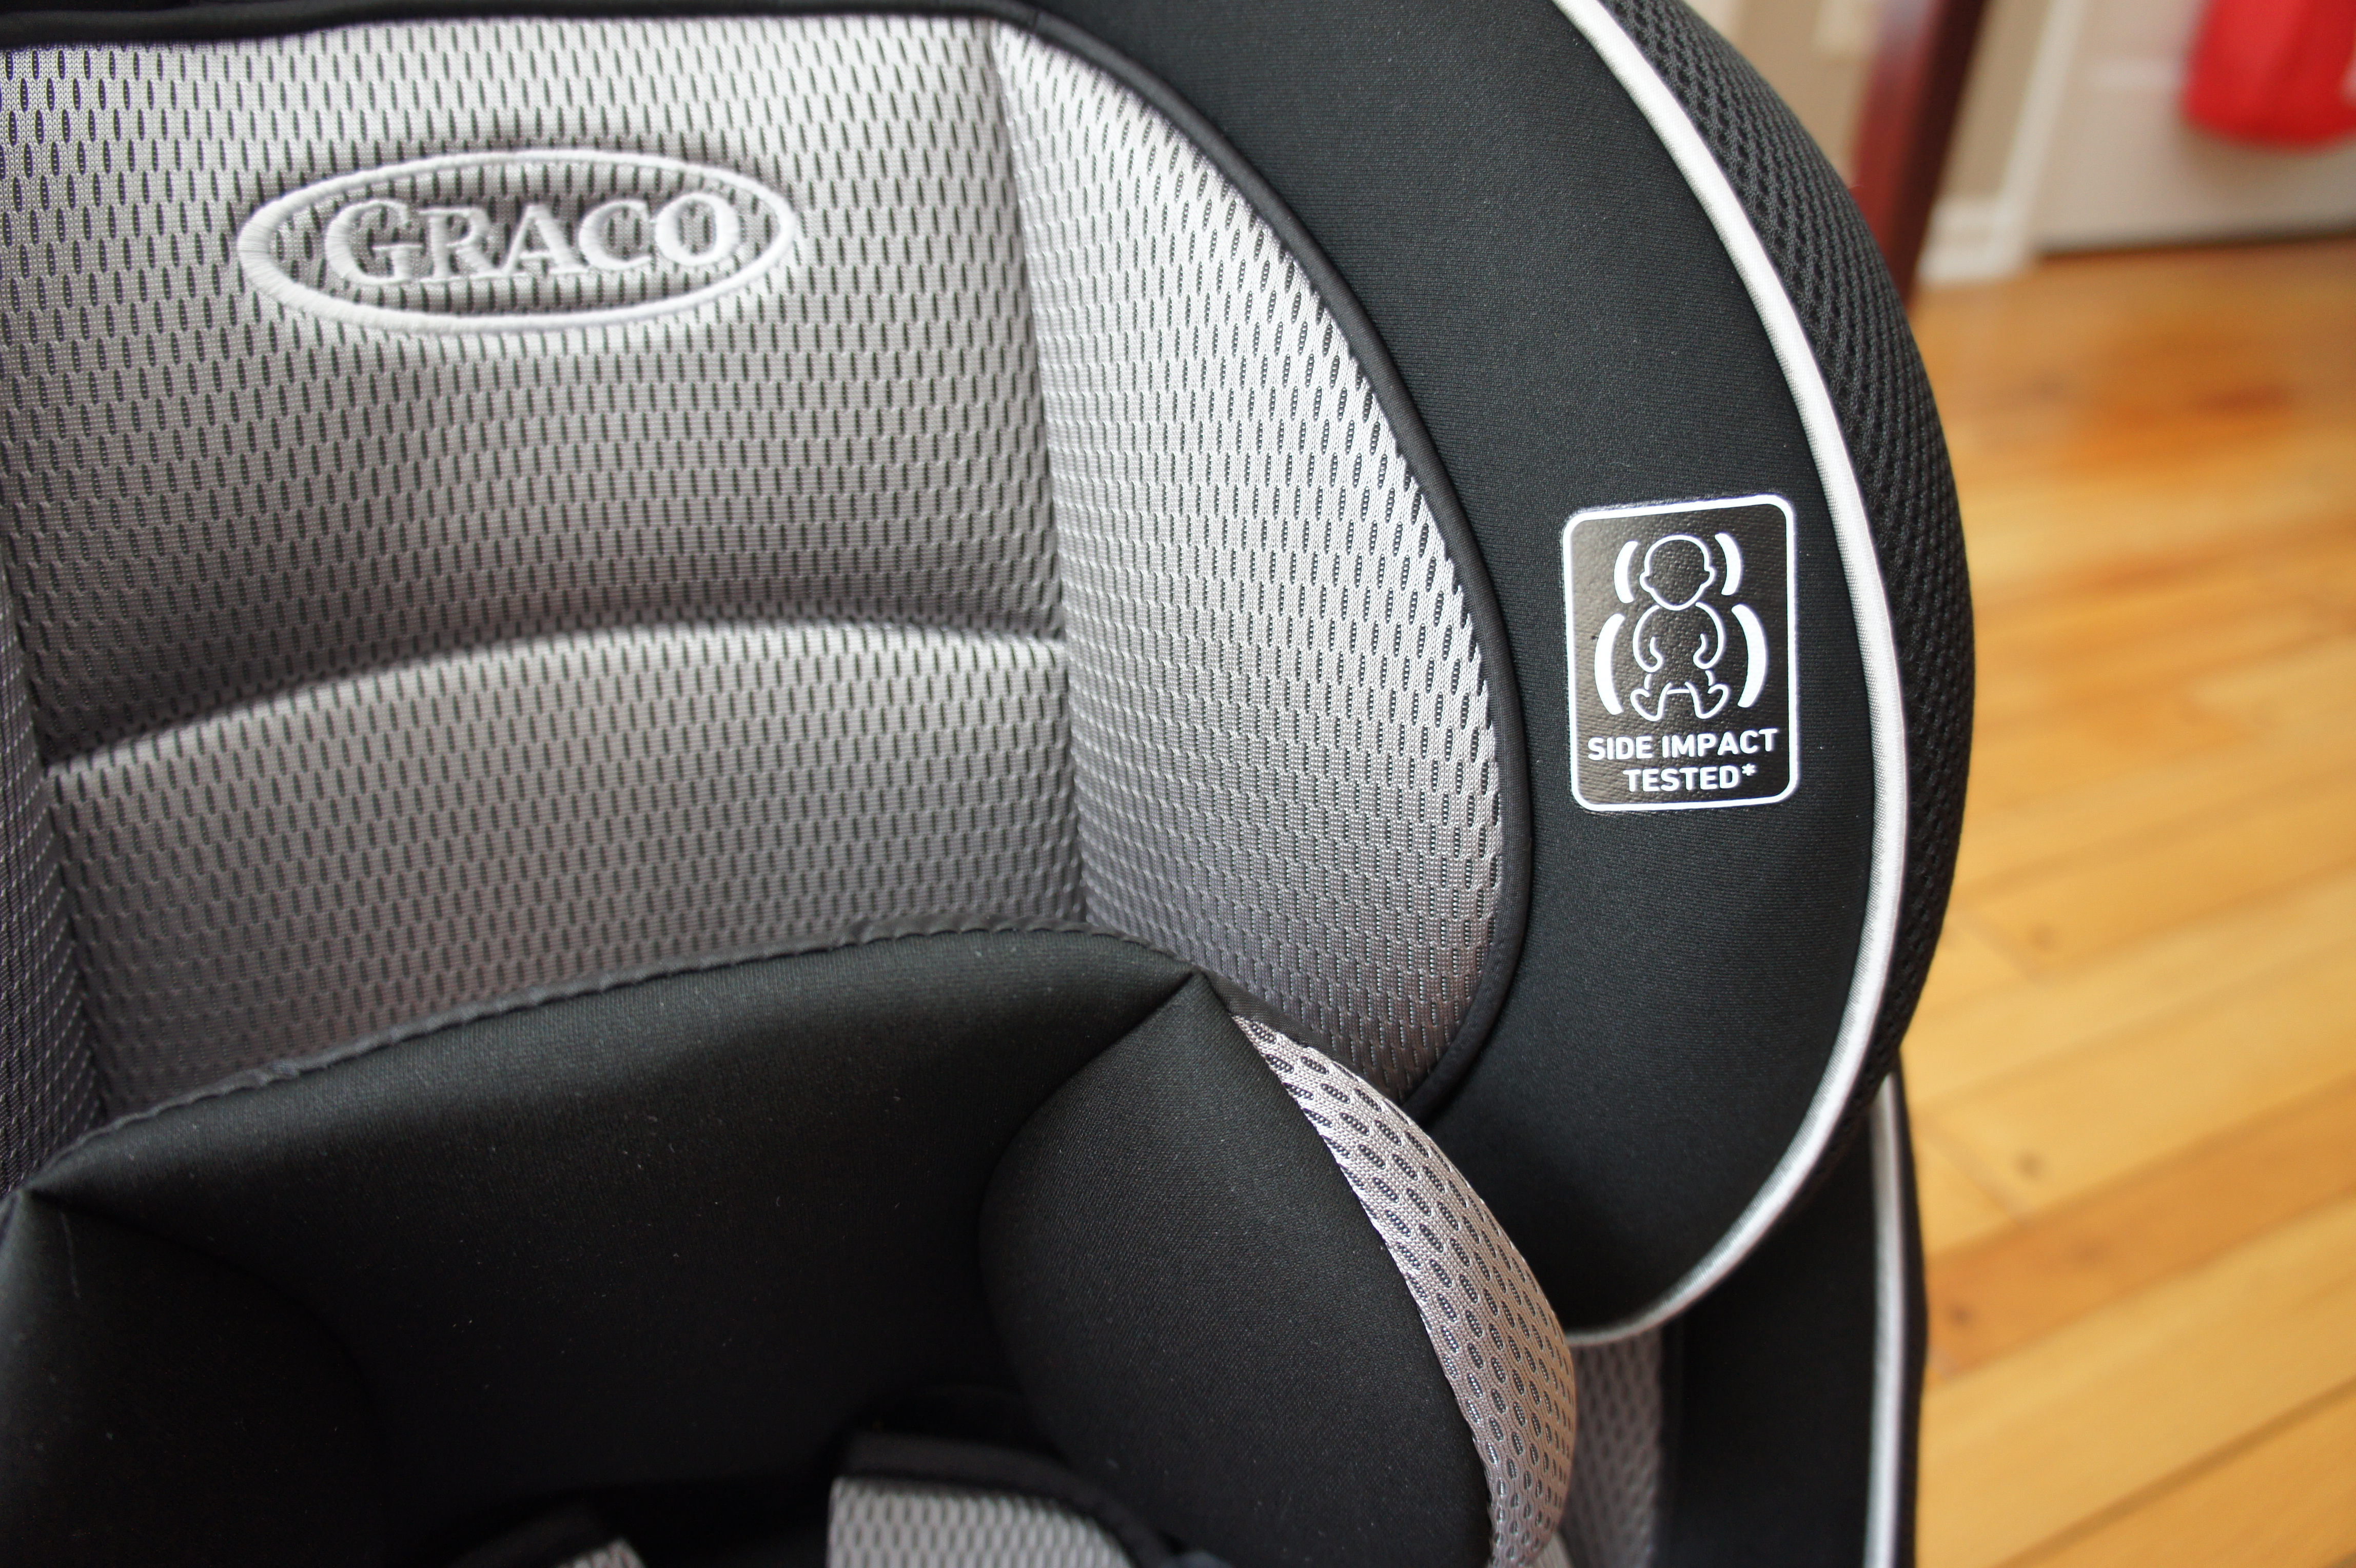 Parts for car seats likewise graco replacement parts for car -  Car Seat Review 2 Cup Holders Make It Easy For Toddlers To Grab A Drink And Keep A Spare For When One Gets Chucked On The Floor